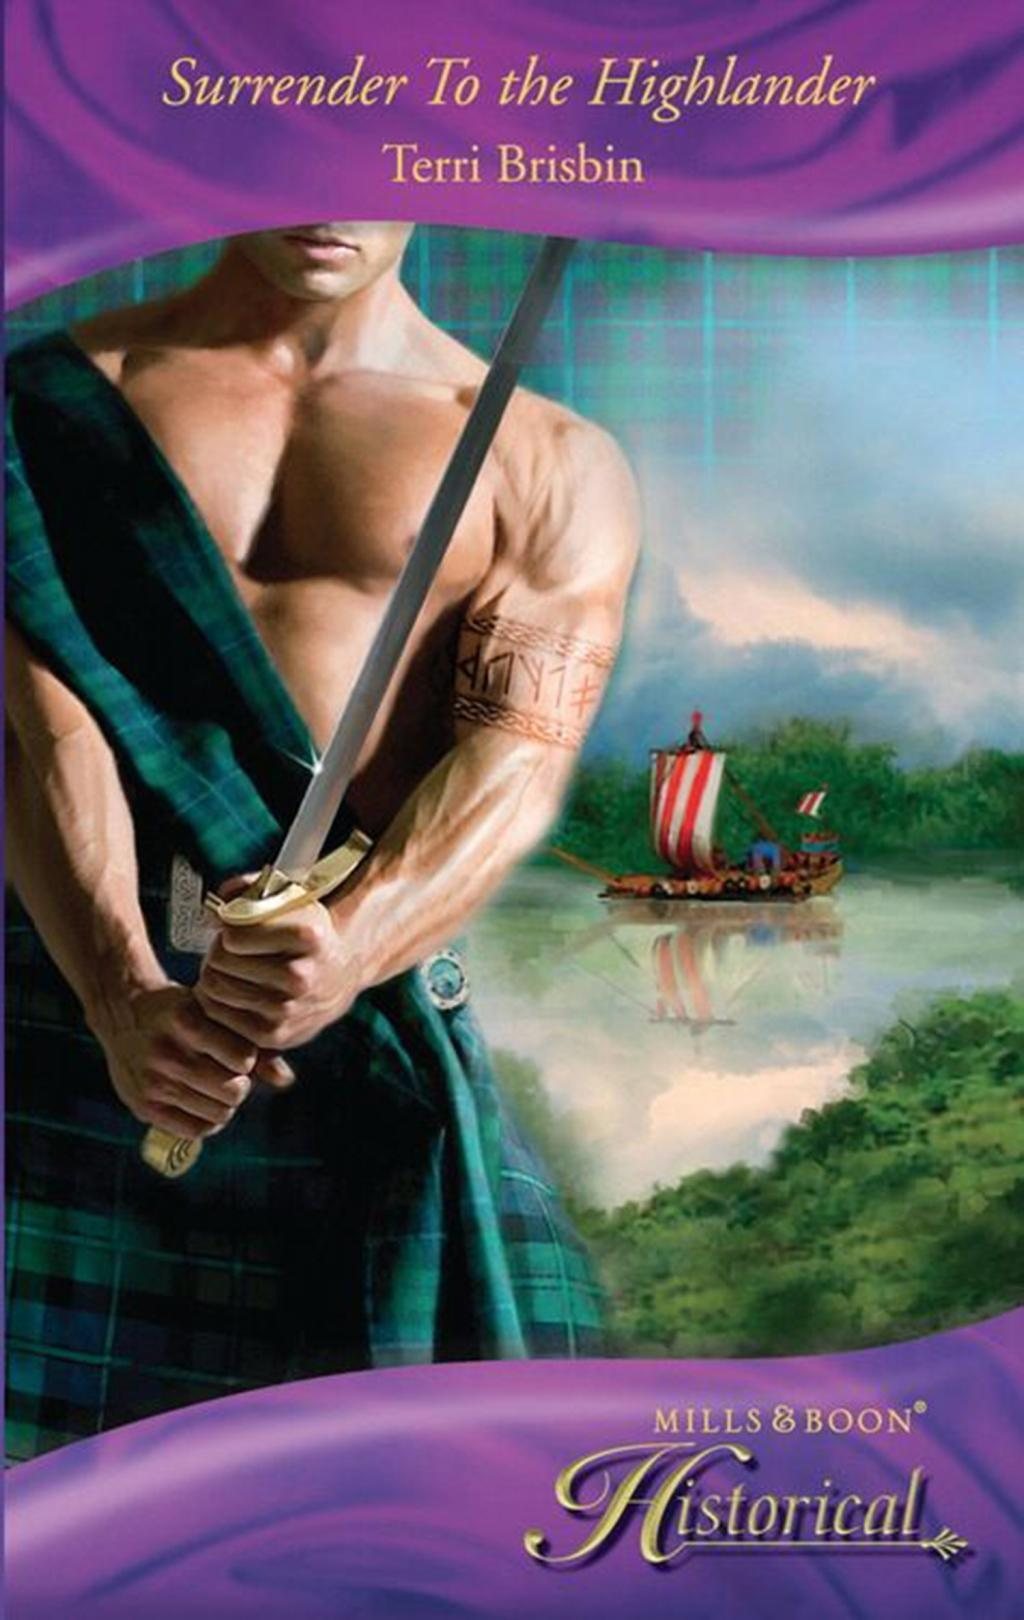 Surrender To the Highlander (Mills & Boon Historical)